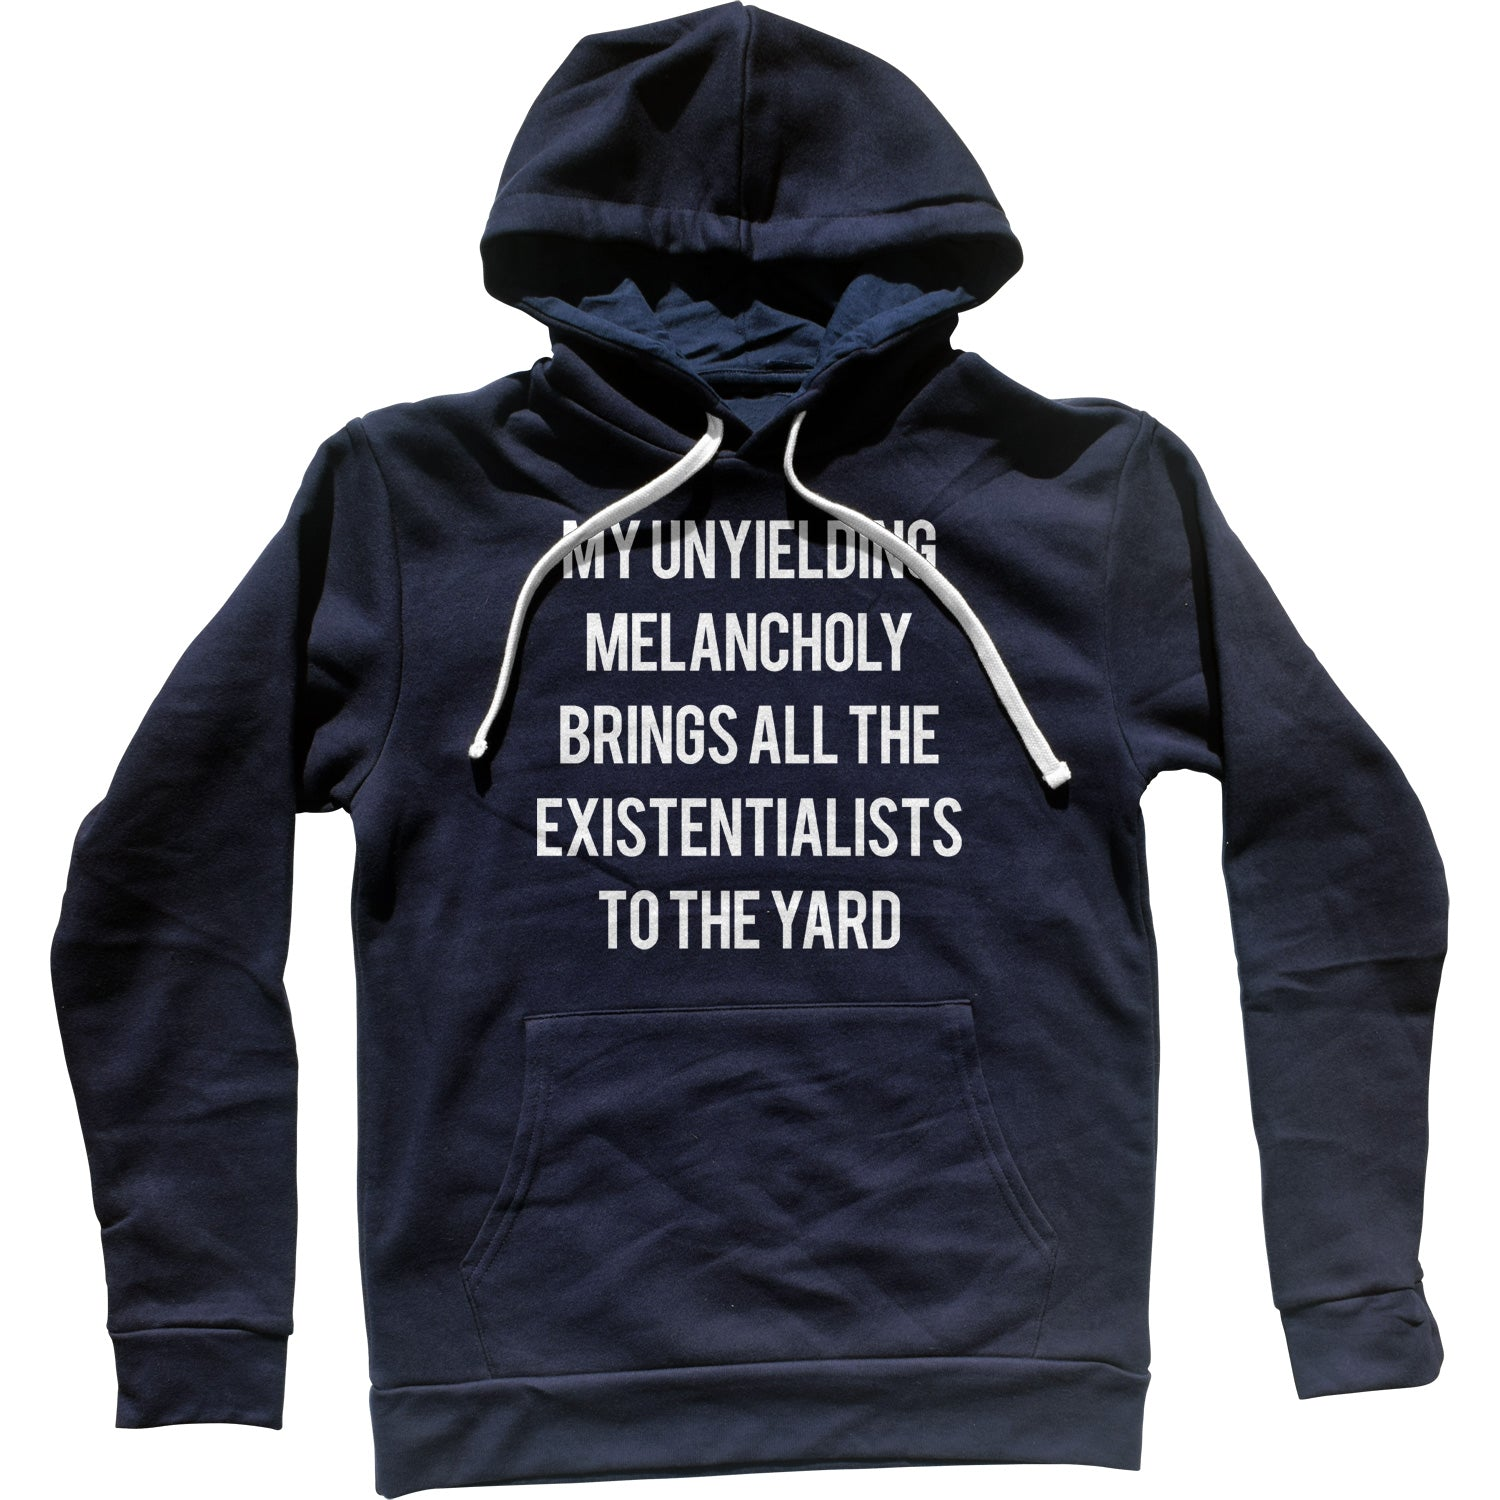 My Unyielding Melancholy Brings All The Existentialists To The Yard Unisex Hoodie